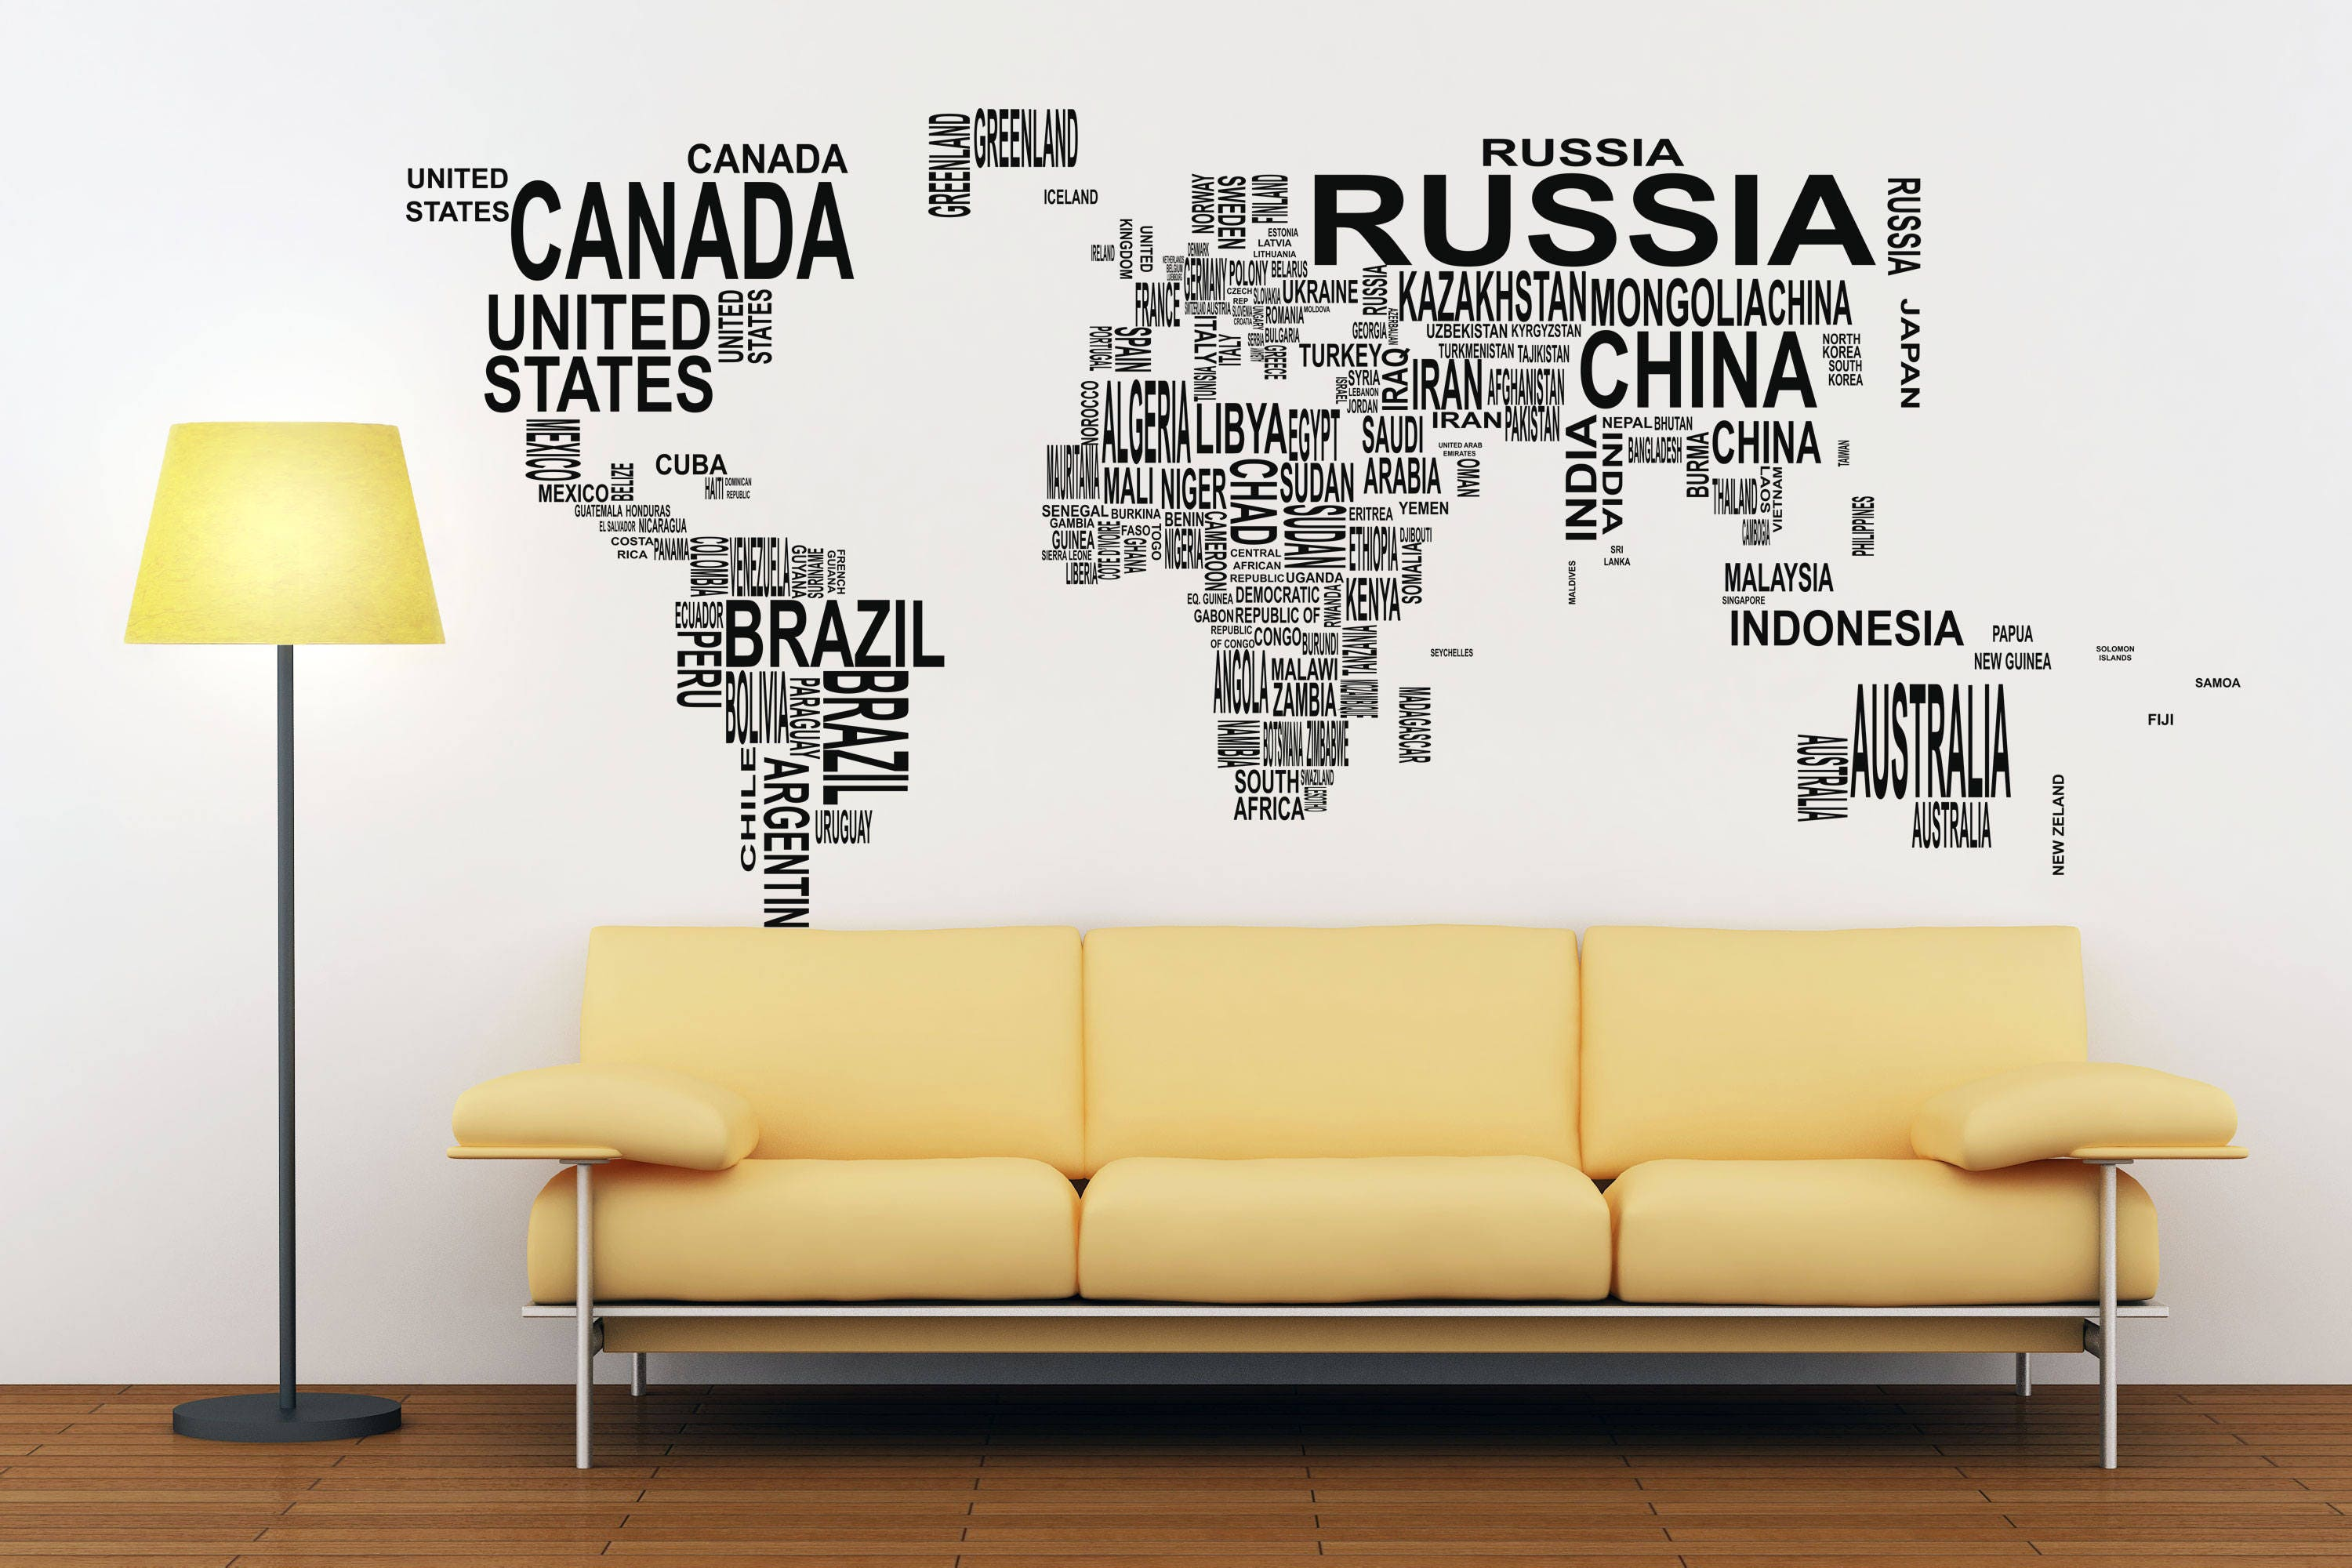 Typography world map decals for home decor lettering usa france typography world map decals for home decor lettering usa france germany italy europe africa australia america russia asia china japan gumiabroncs Gallery